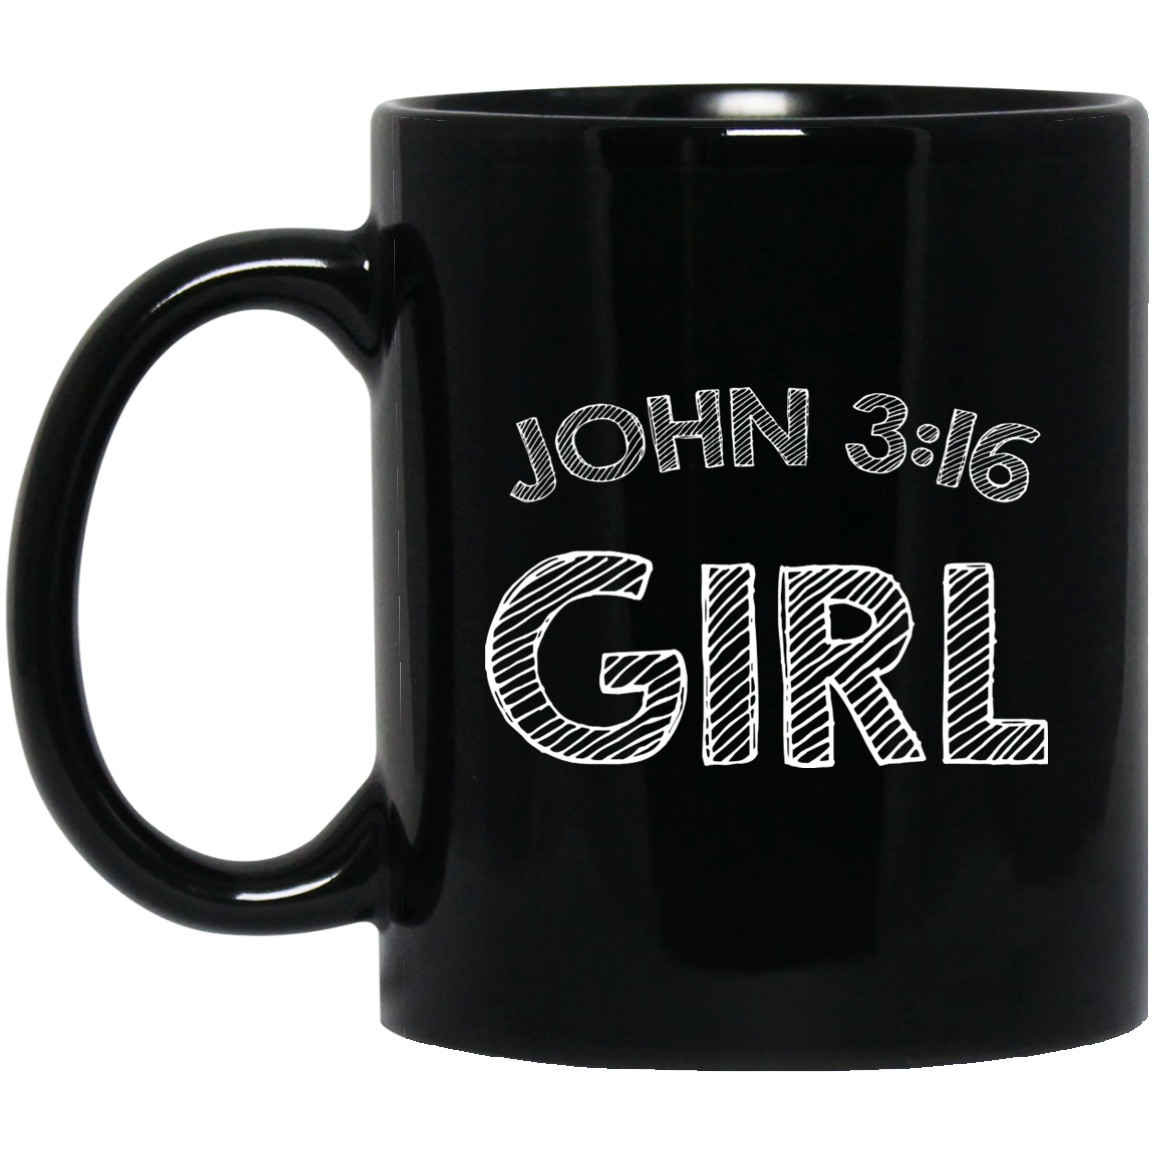 John 316 Girl T-Shirt Three 16 316 Christian Style Jesus